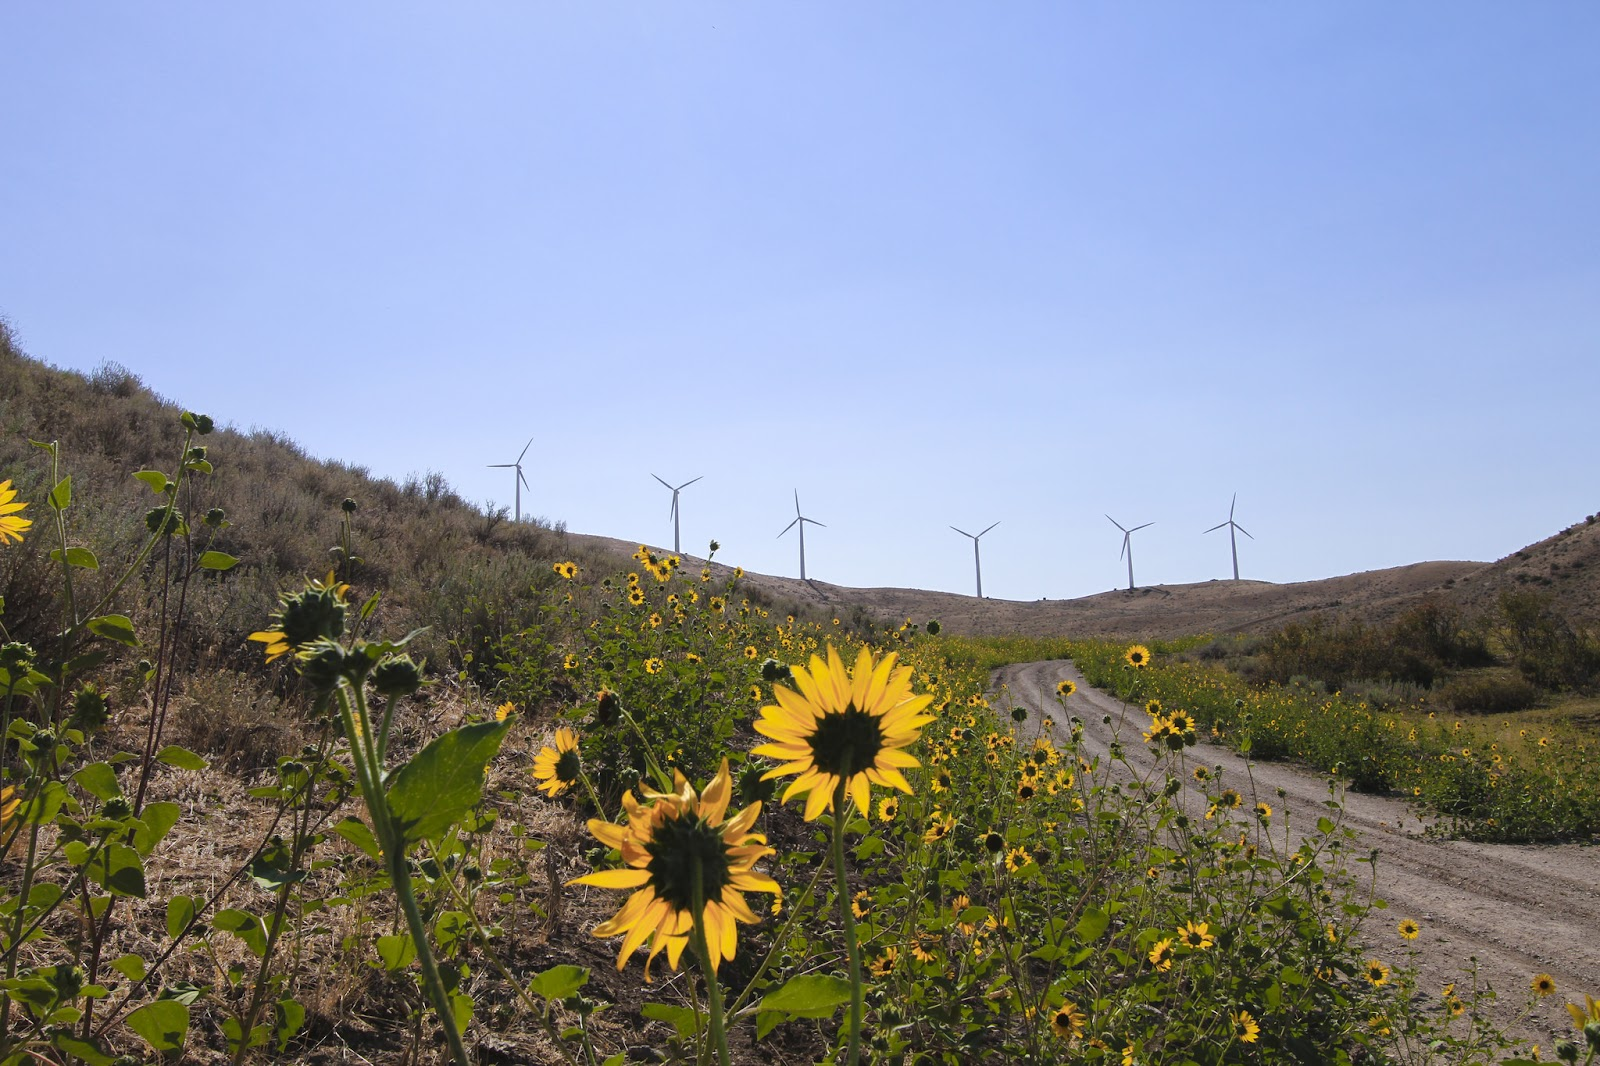 Windmills with sunflowers in the foreground.